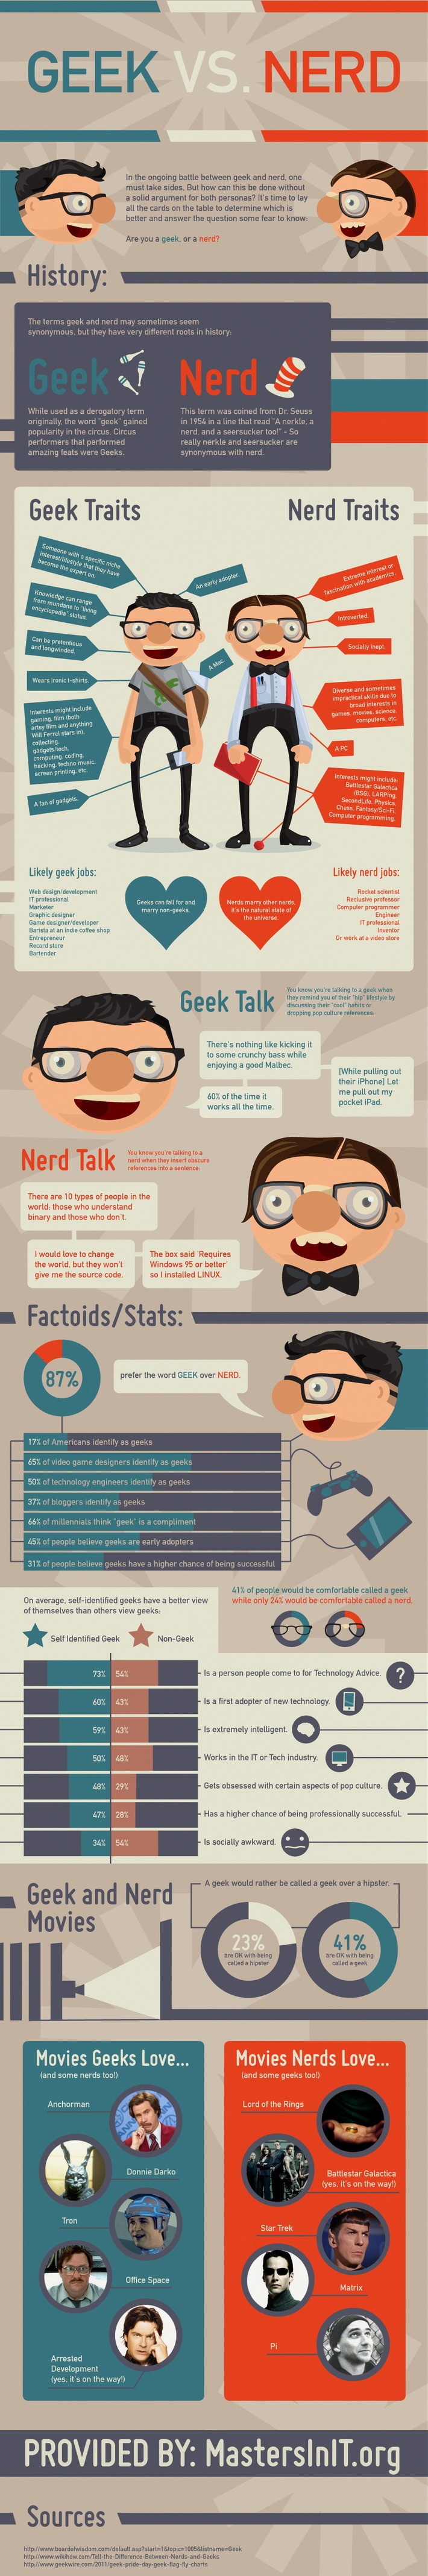 I Can't Decide If I'm A Nerd Or A Geek; Maybe It's The Gender Bias | Dare To Be A Feminist | Scoop.it